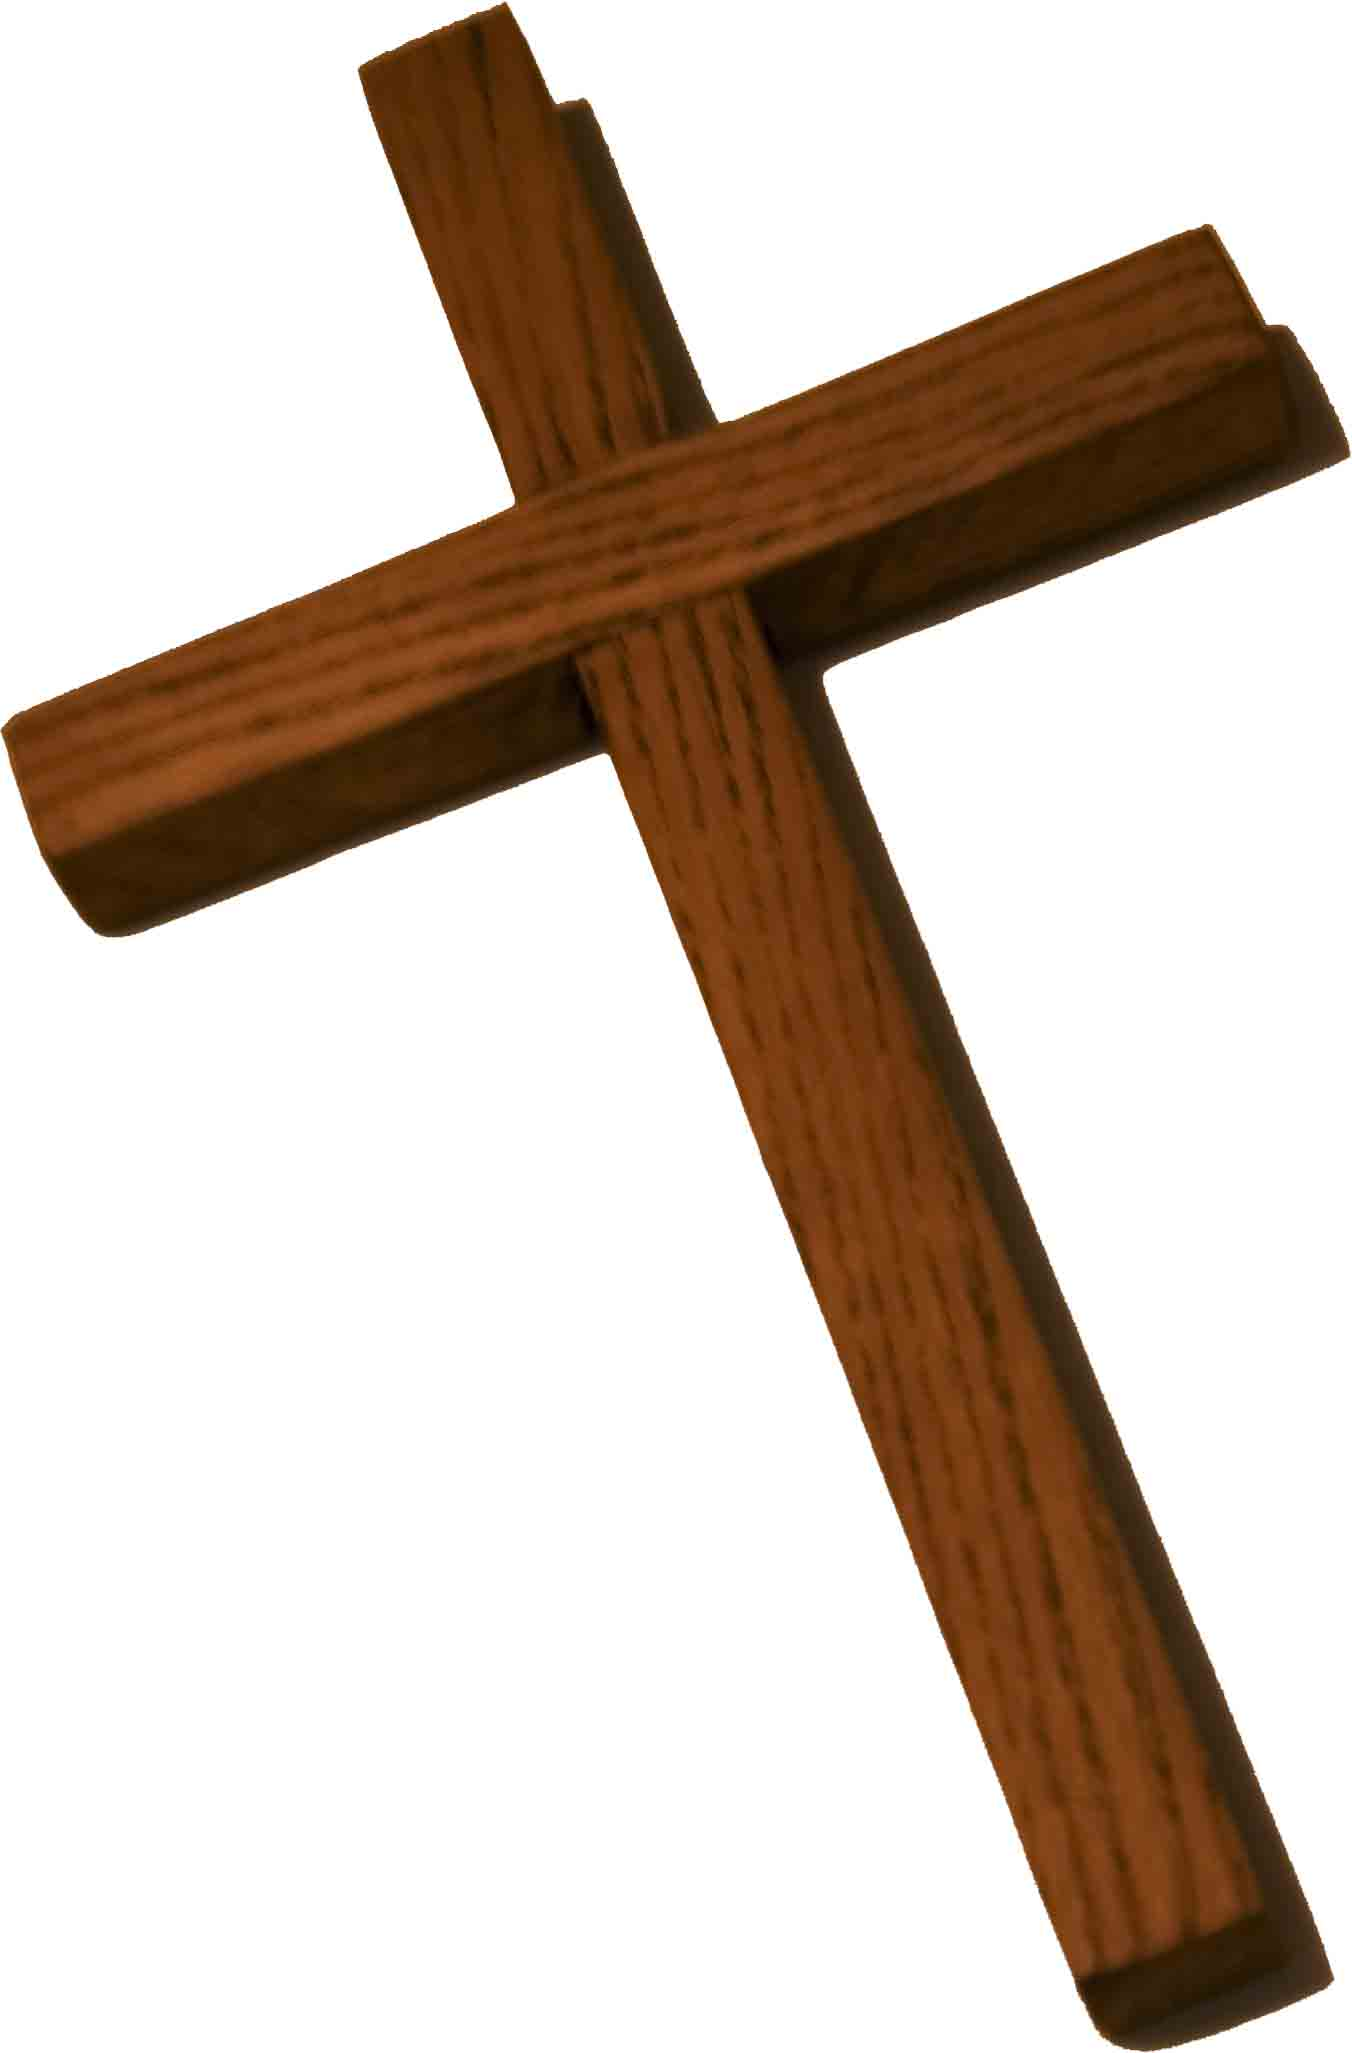 wooden cross images cliparts co wooden cross clipart graphics wooden cross clipart black and white